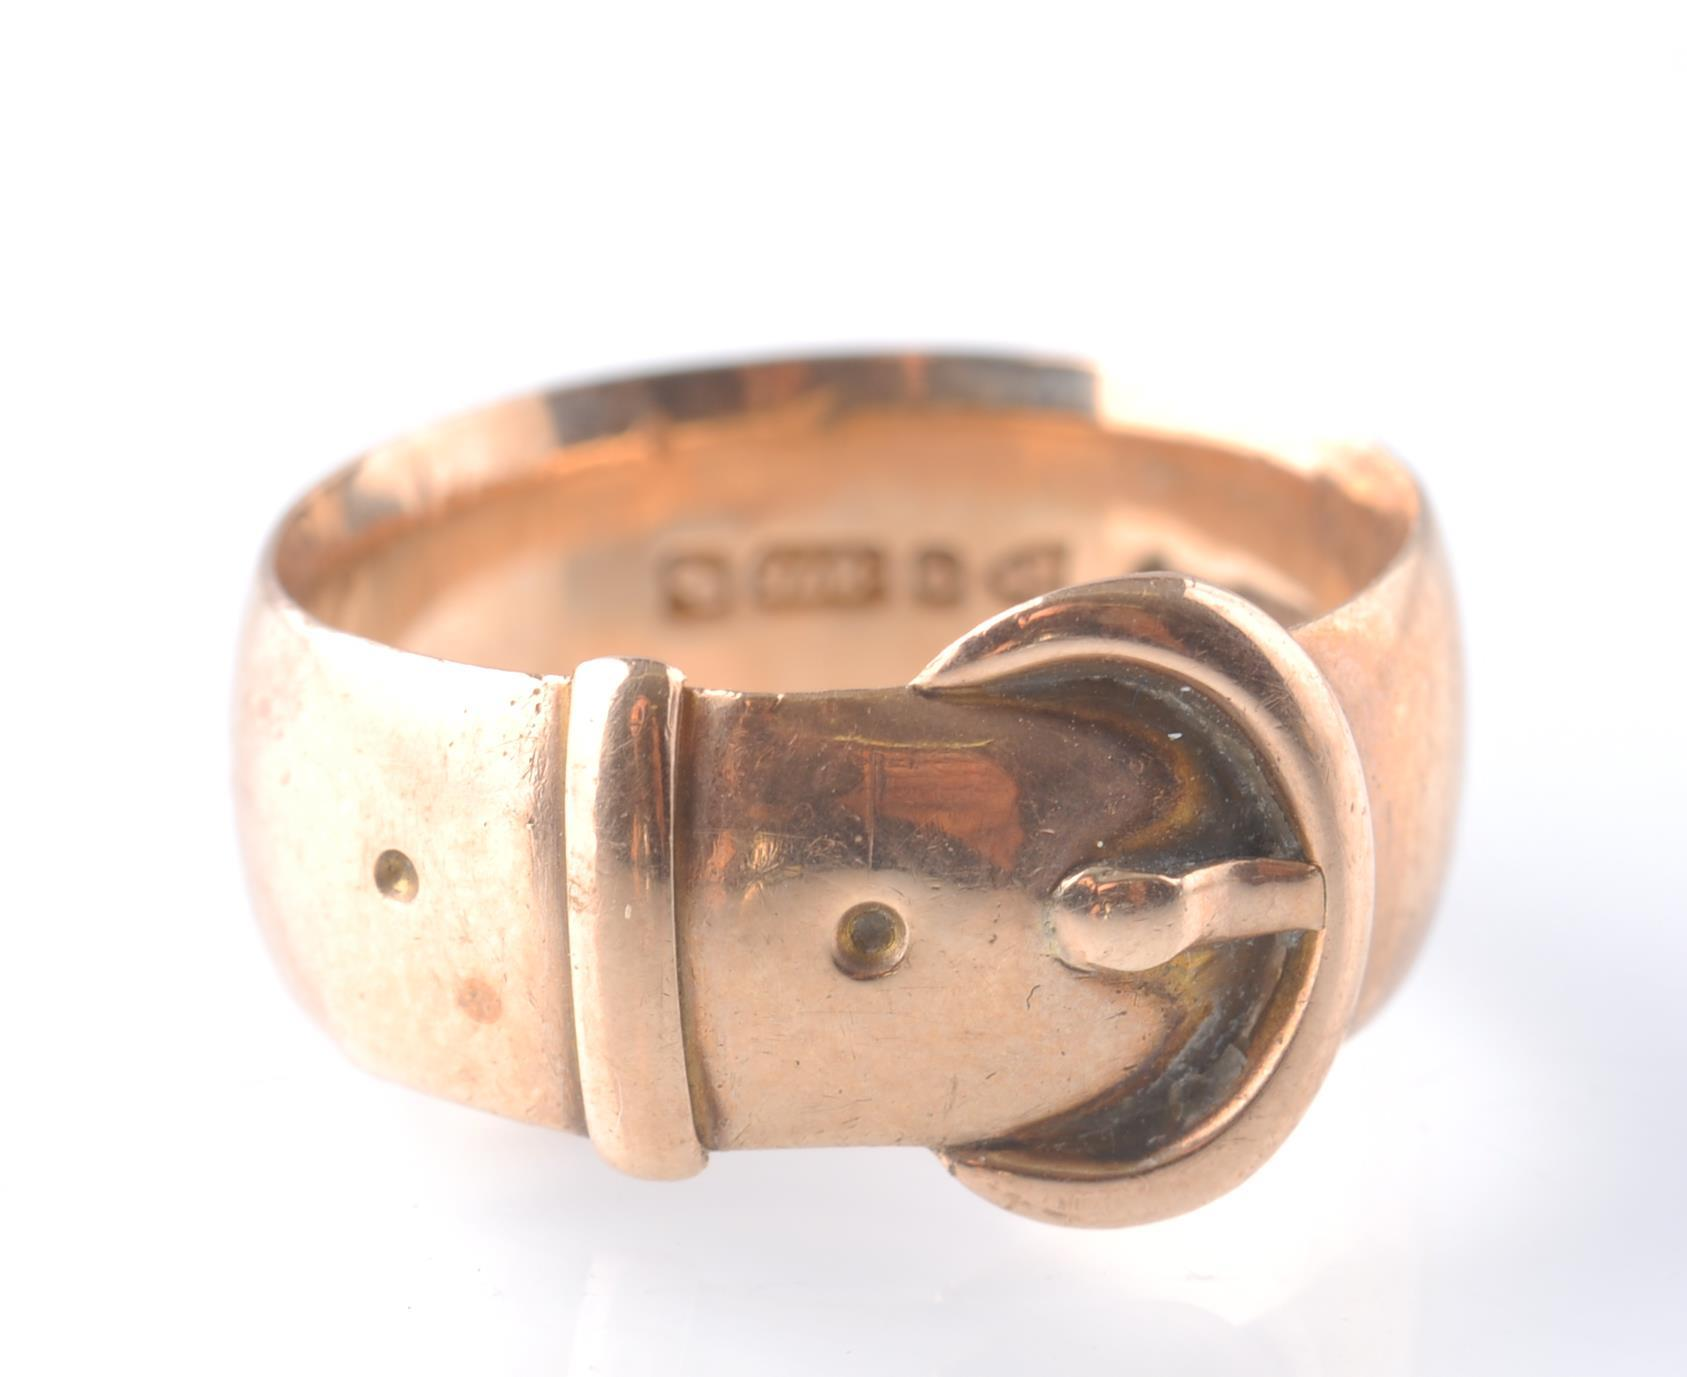 Lot 137 - EDWARDIAN 1909 18CT GOLD CHESTER HALLMARKED BUCKLE